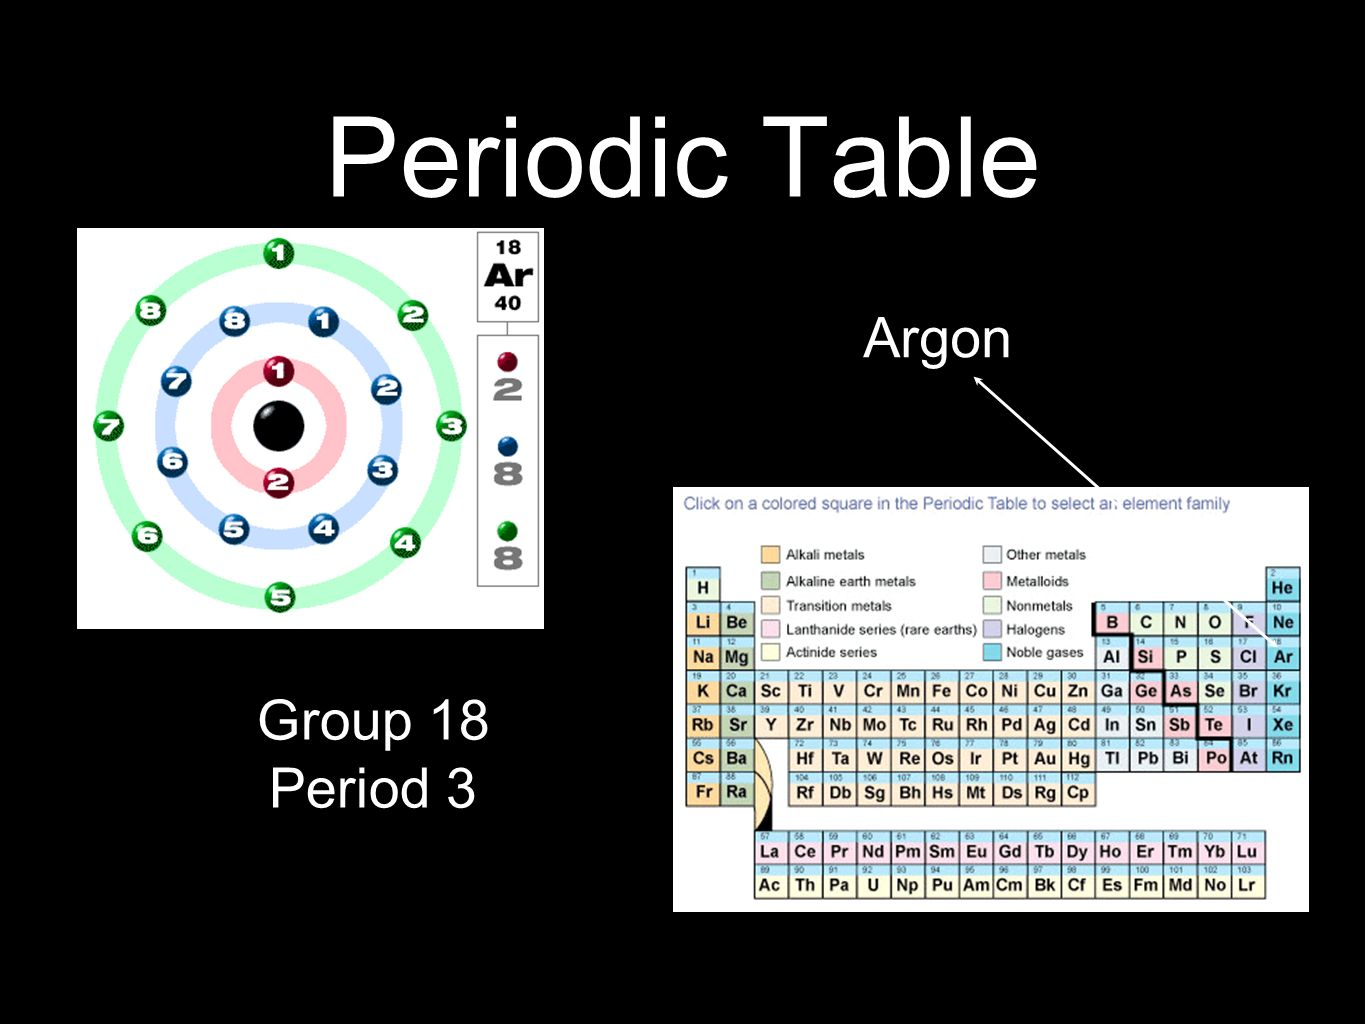 Argon by dalton miller ppt video online download 3 periodic table argon group 18 period 3 gamestrikefo Gallery